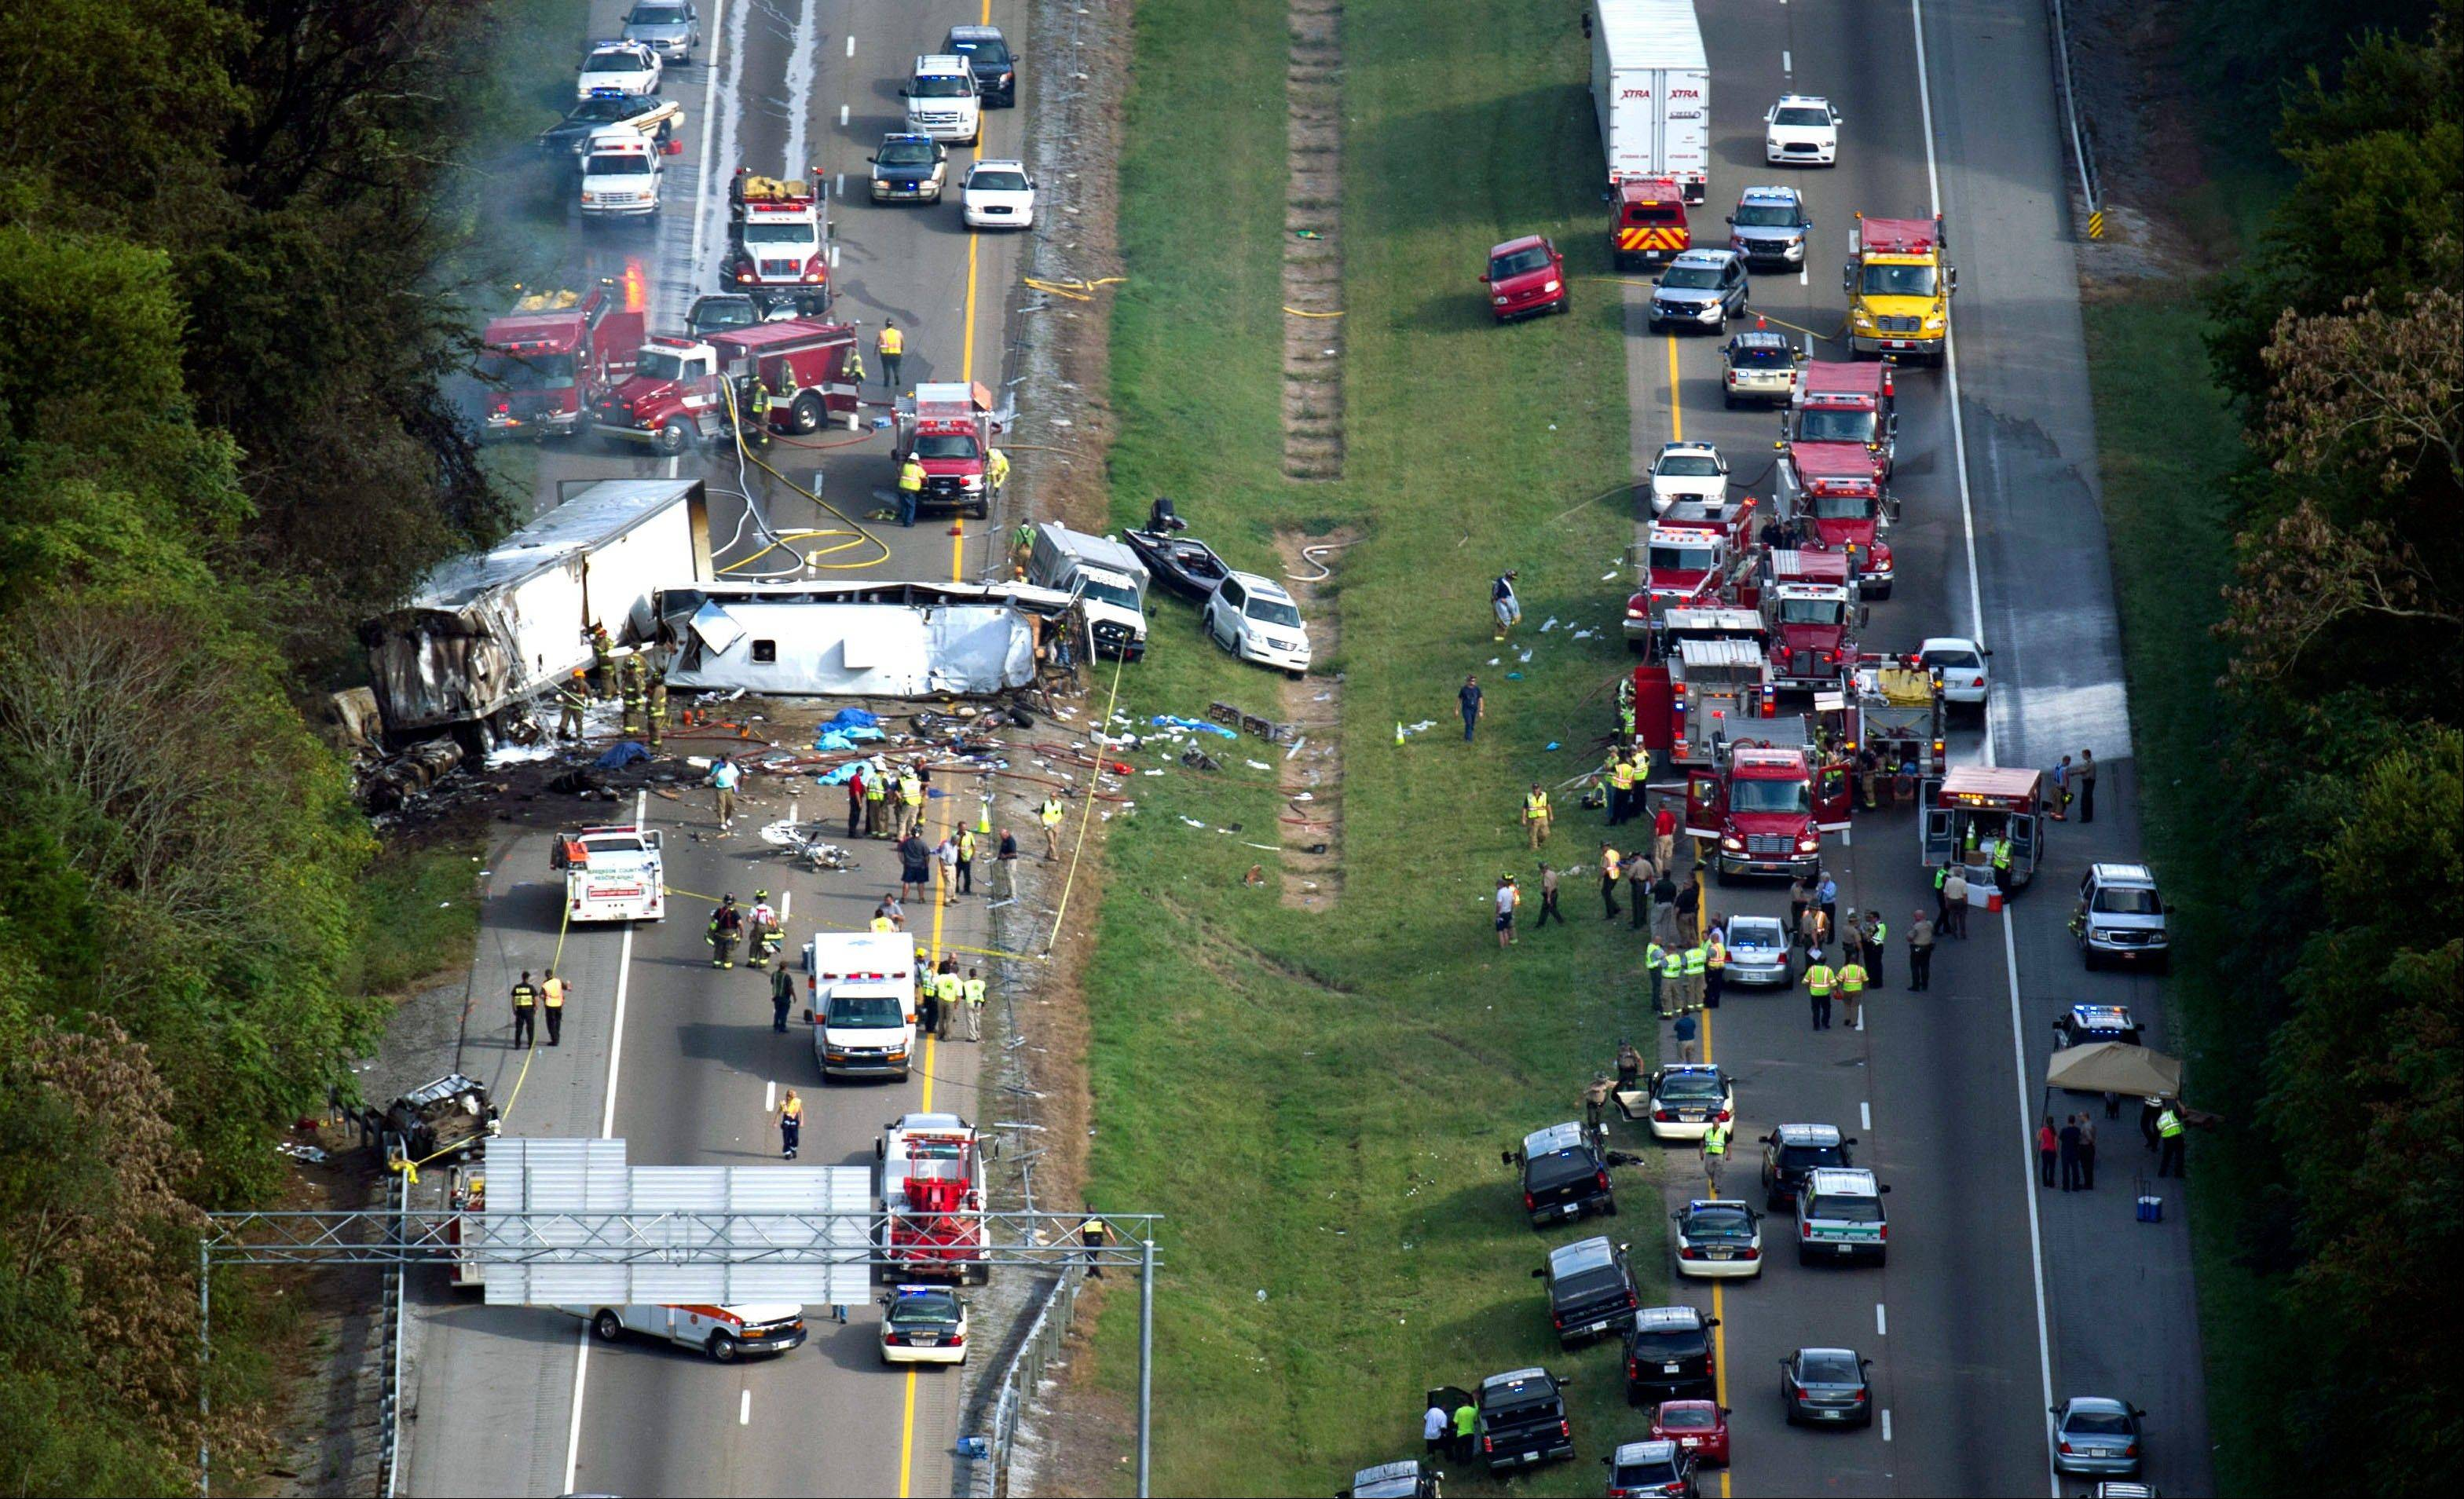 In this aerial photo, emergency workers respond to a crash involving a passenger bus, a tractor-trailer and an SUV near Dandridge, Tenn., on Wednesday, Oct. 2, 2013. Authorities said the bus, carrying members of a North Carolina church group, veered across the highway median and crashed into the other vehicles in a fiery wreck that killed eight people.